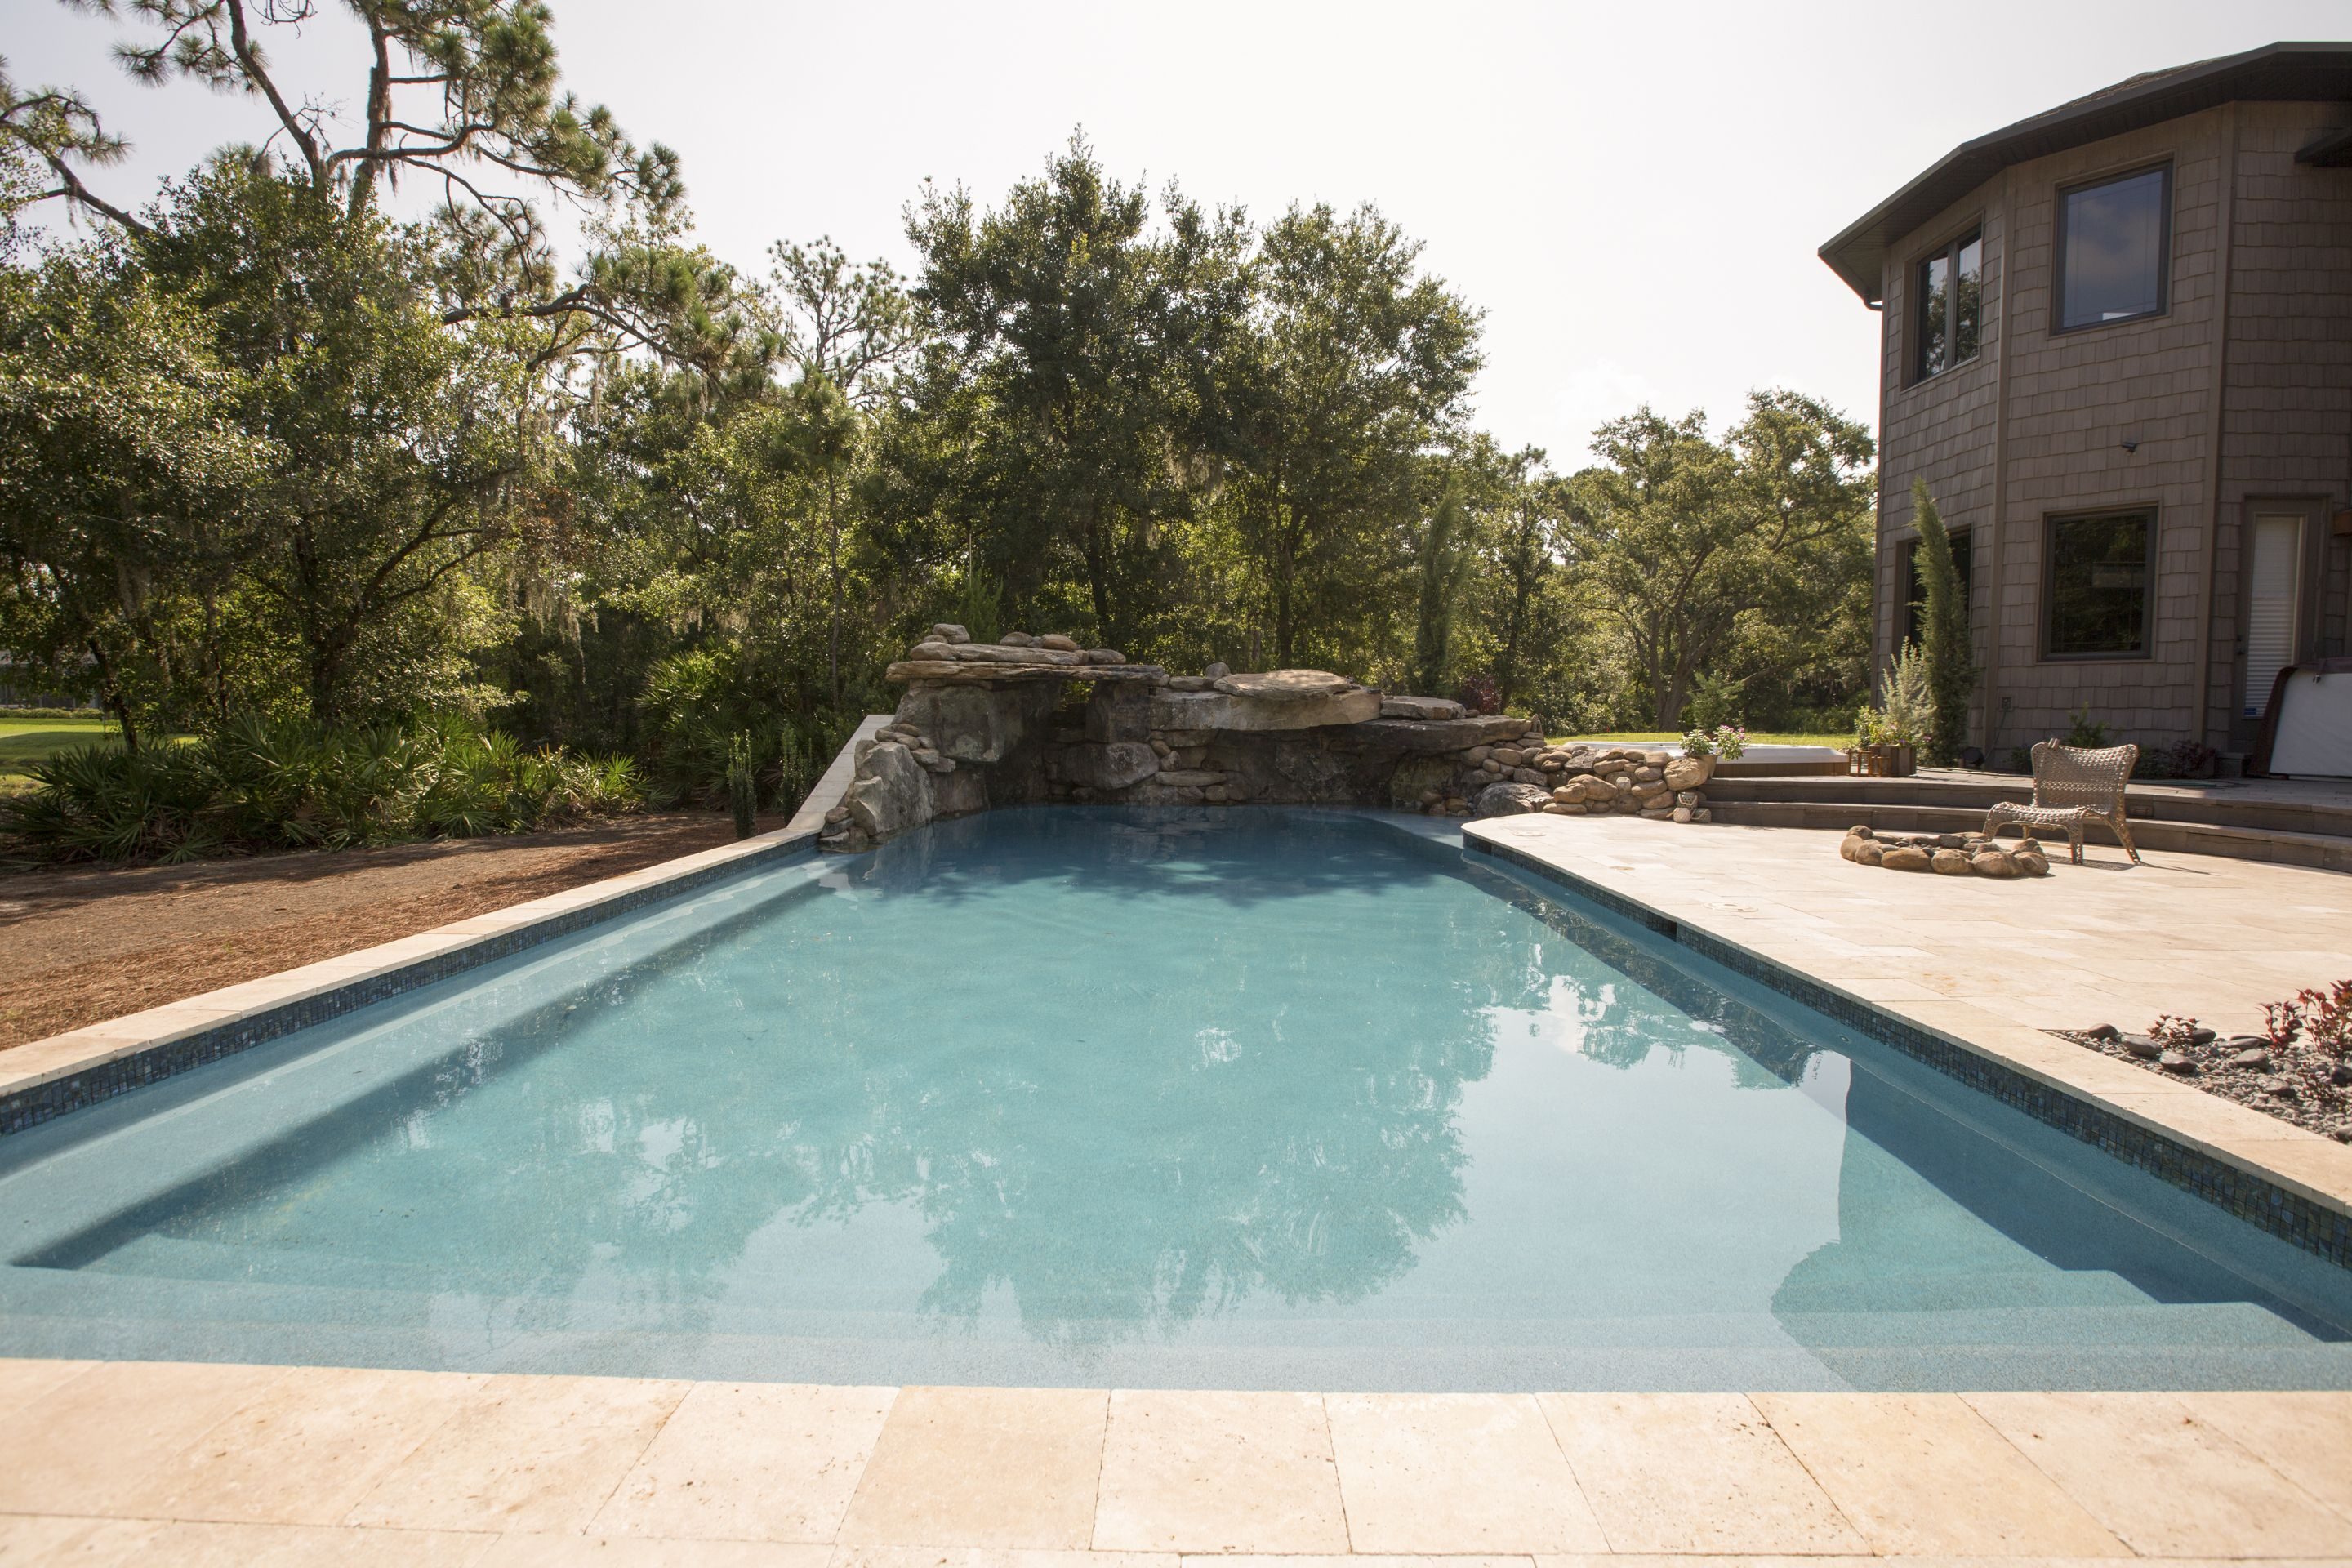 11 amazing pool design ideas   swimming pool makeover photos